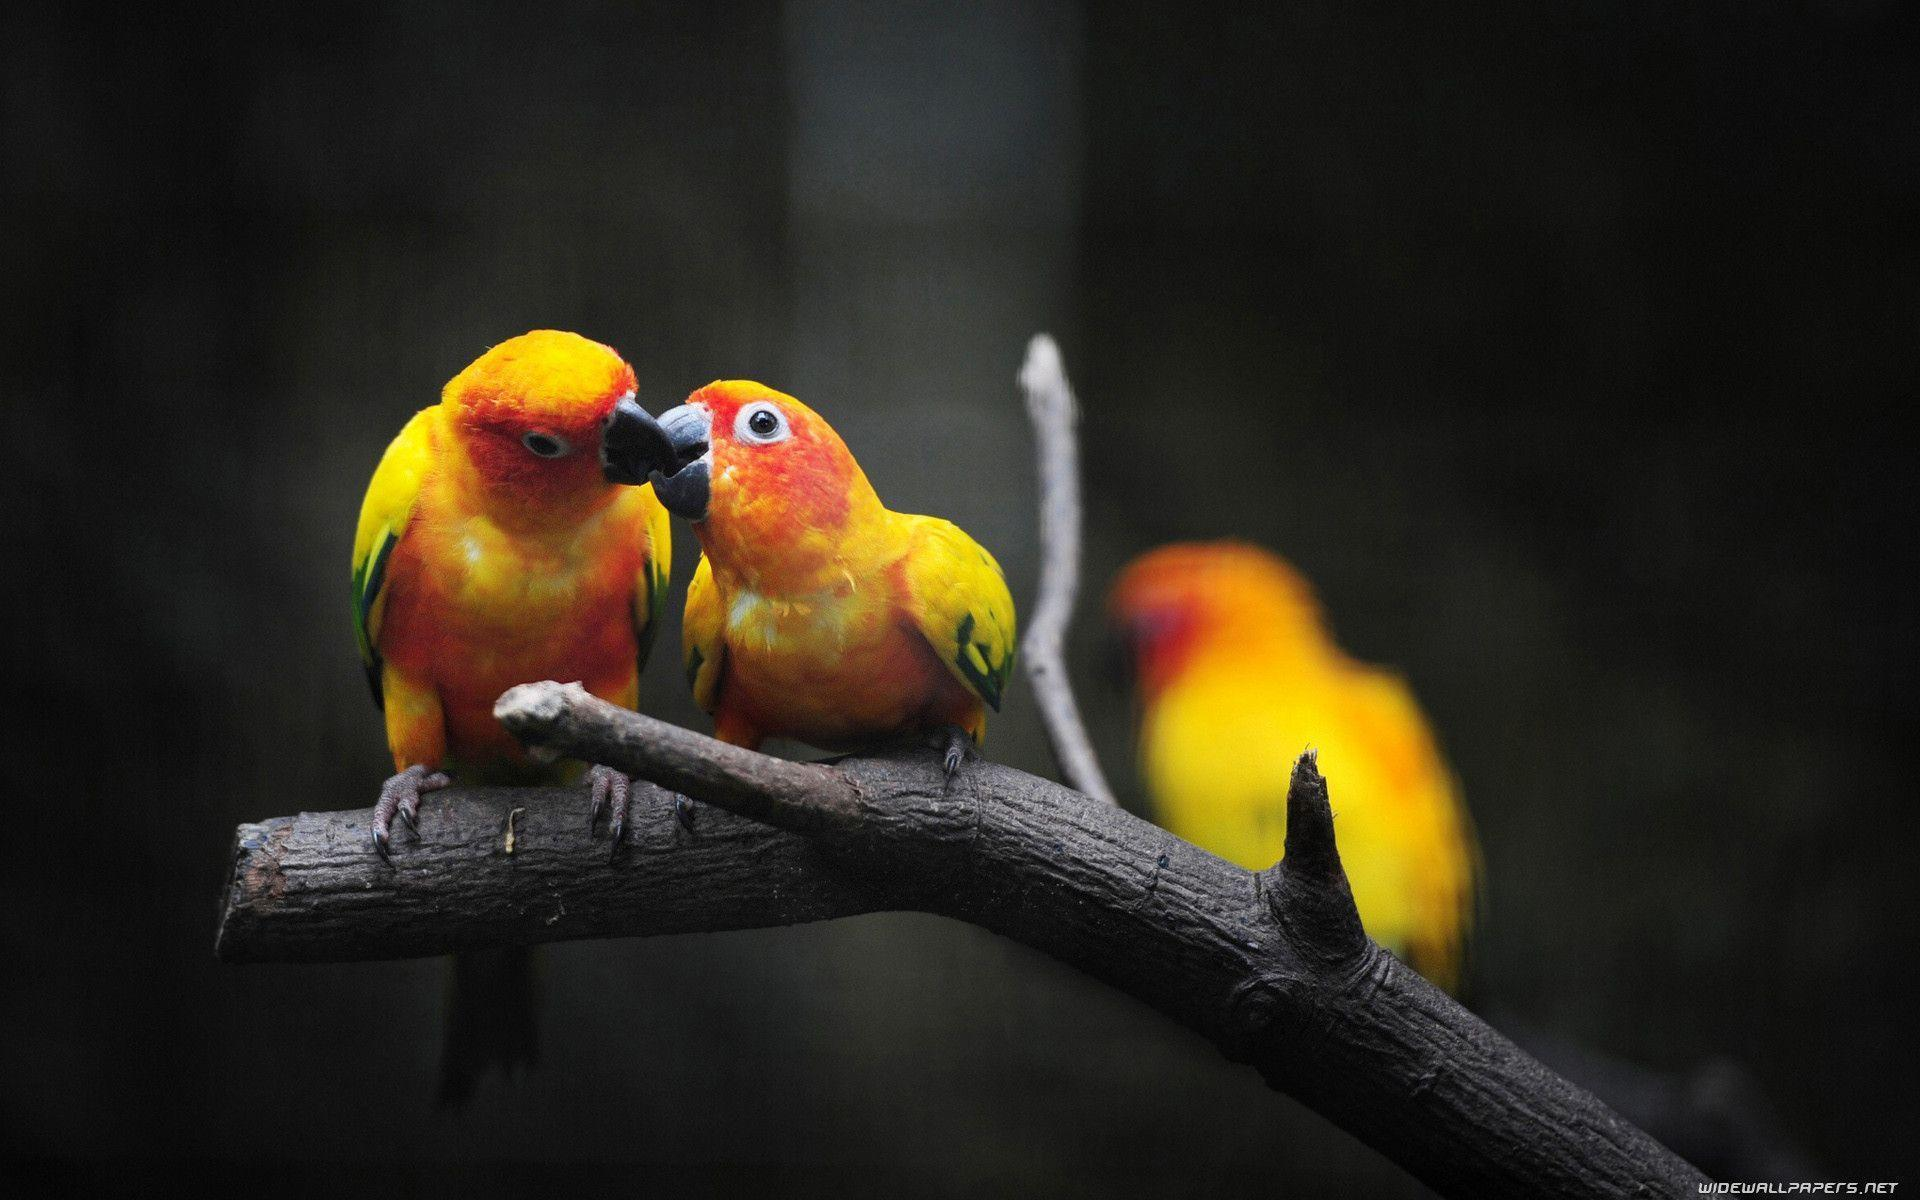 Love Birds Wallpaper In Hd : Love Birds Wallpapers - Wallpaper cave